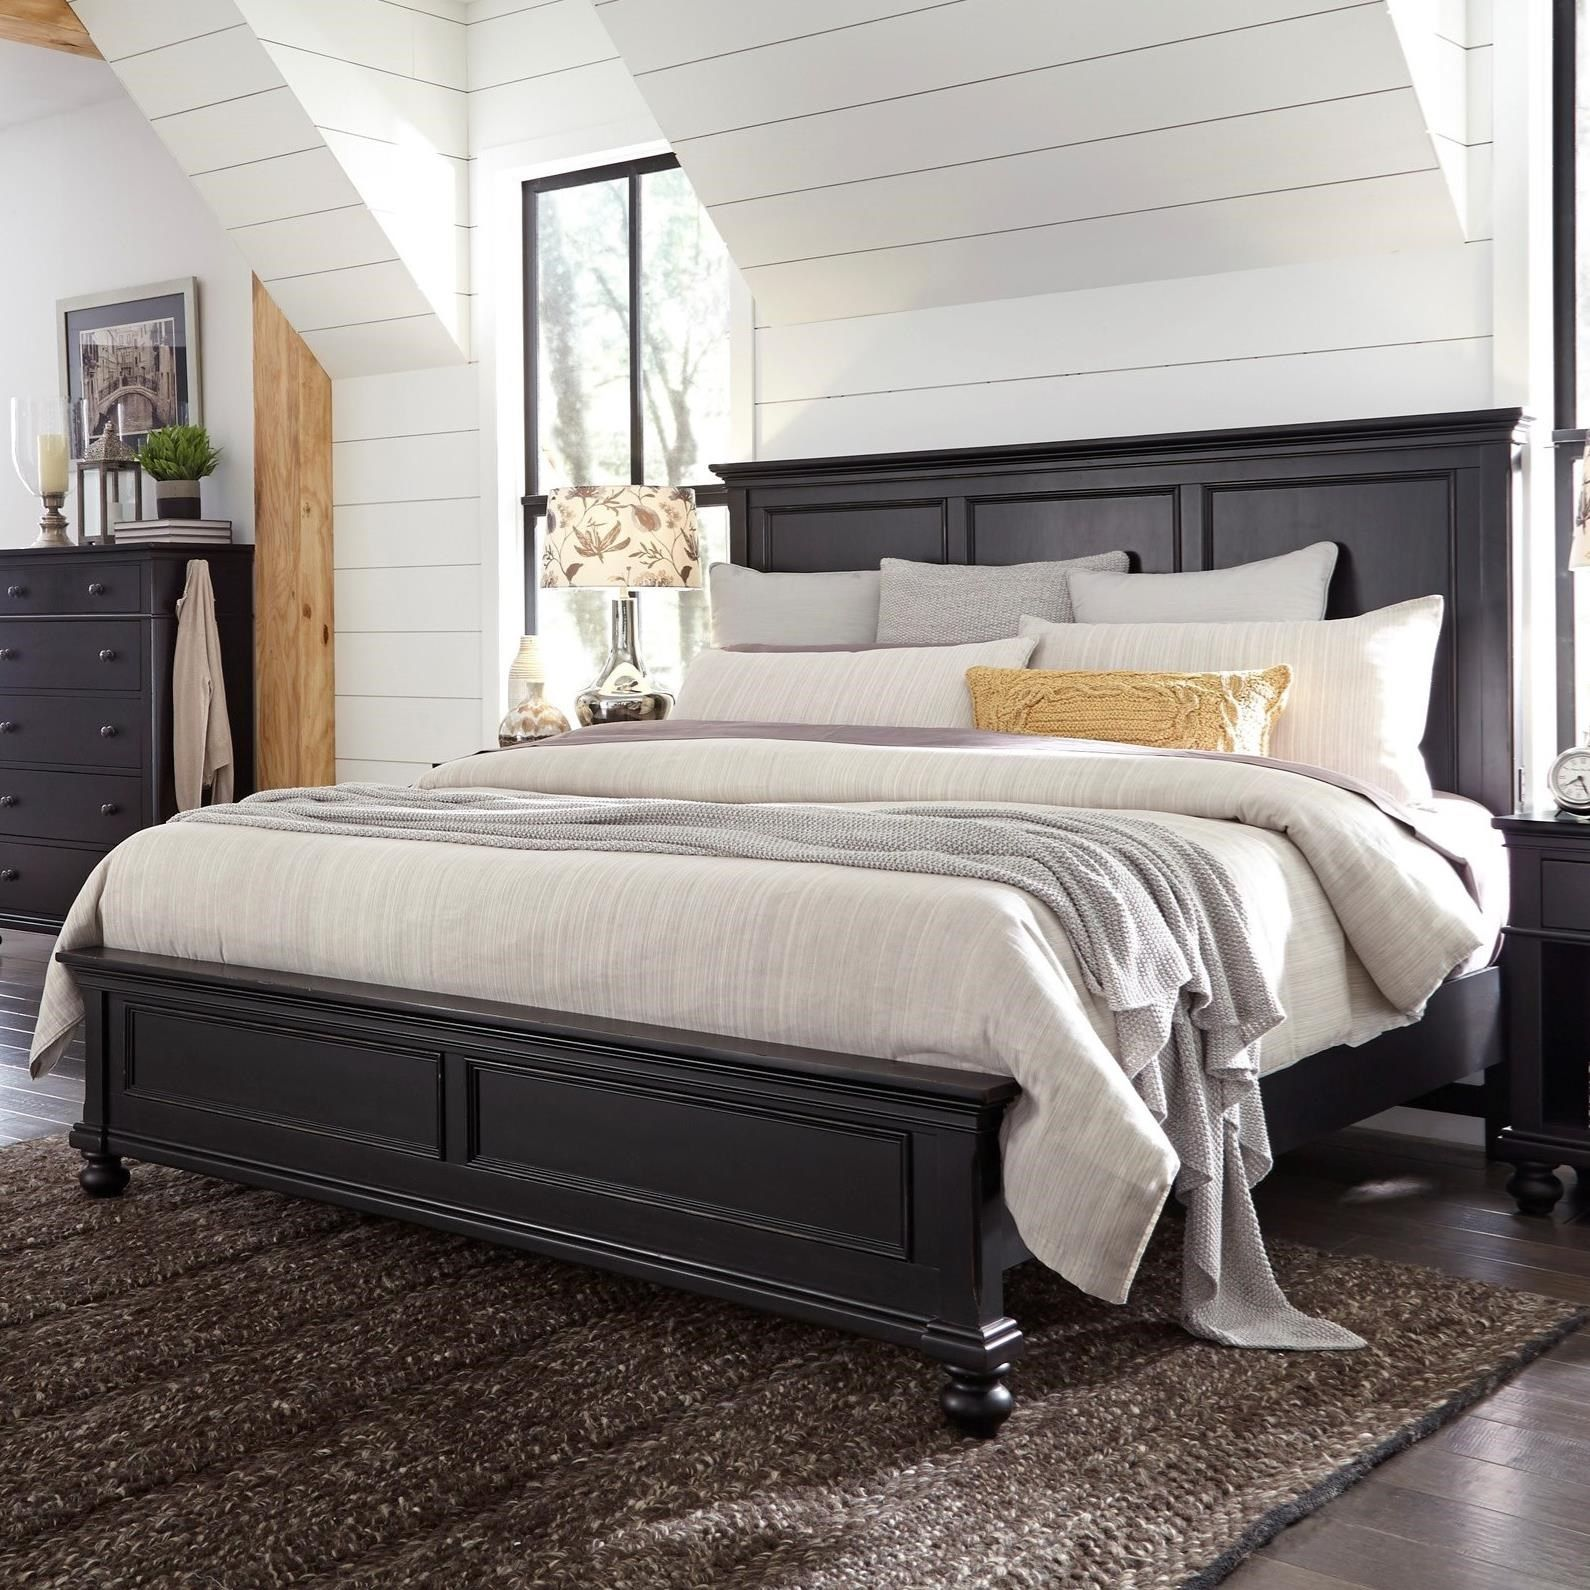 oxford oakford king panel bed by highland court at morris home